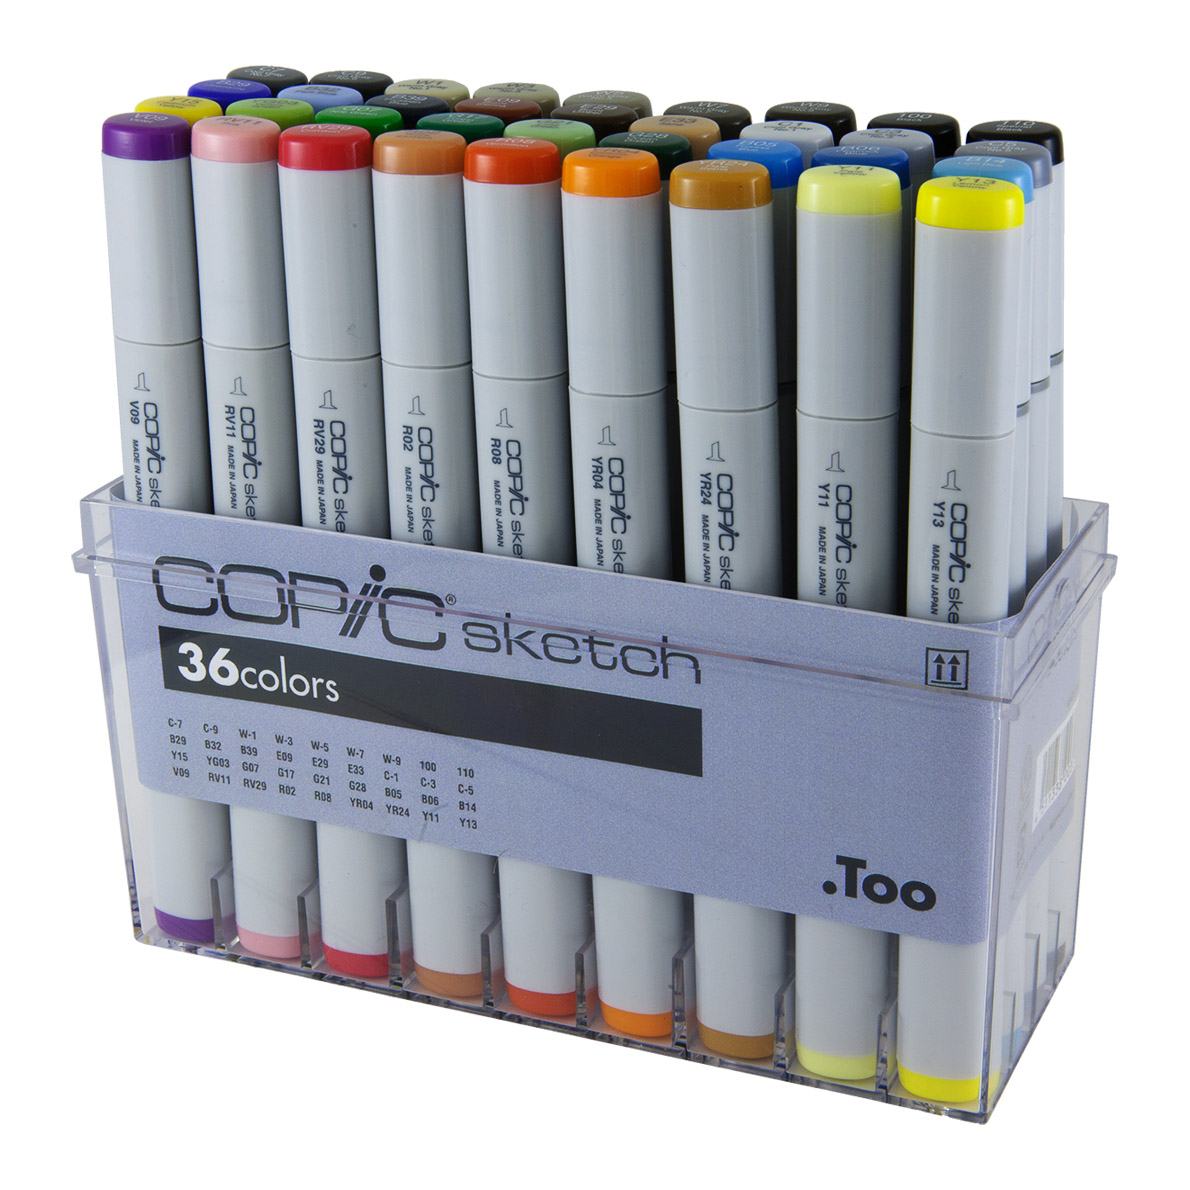 36 Pens Copic Sketch Marker Set